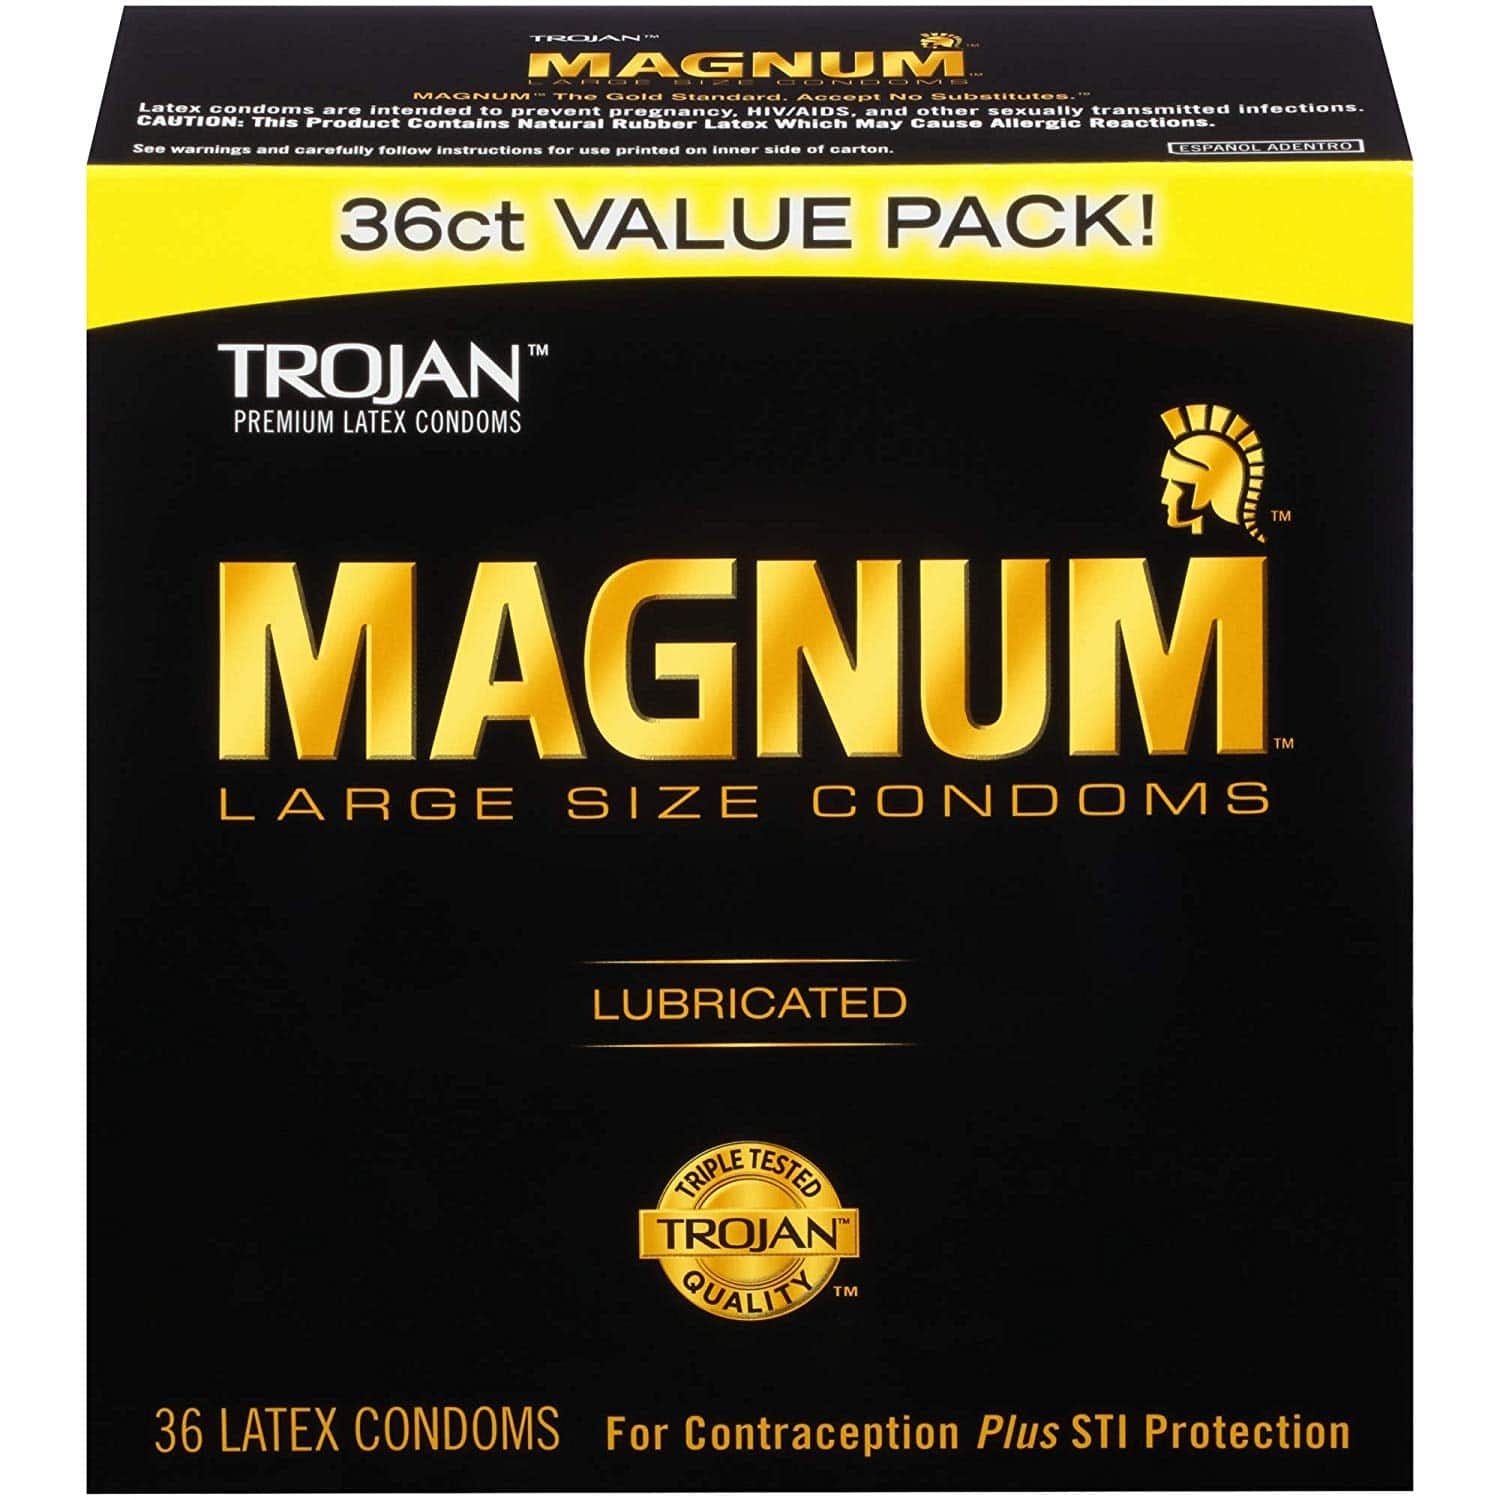 Trojan Magnum Large Size Lubricated Condoms - 36 count - $10.93 shipped w/ Amazon S&S